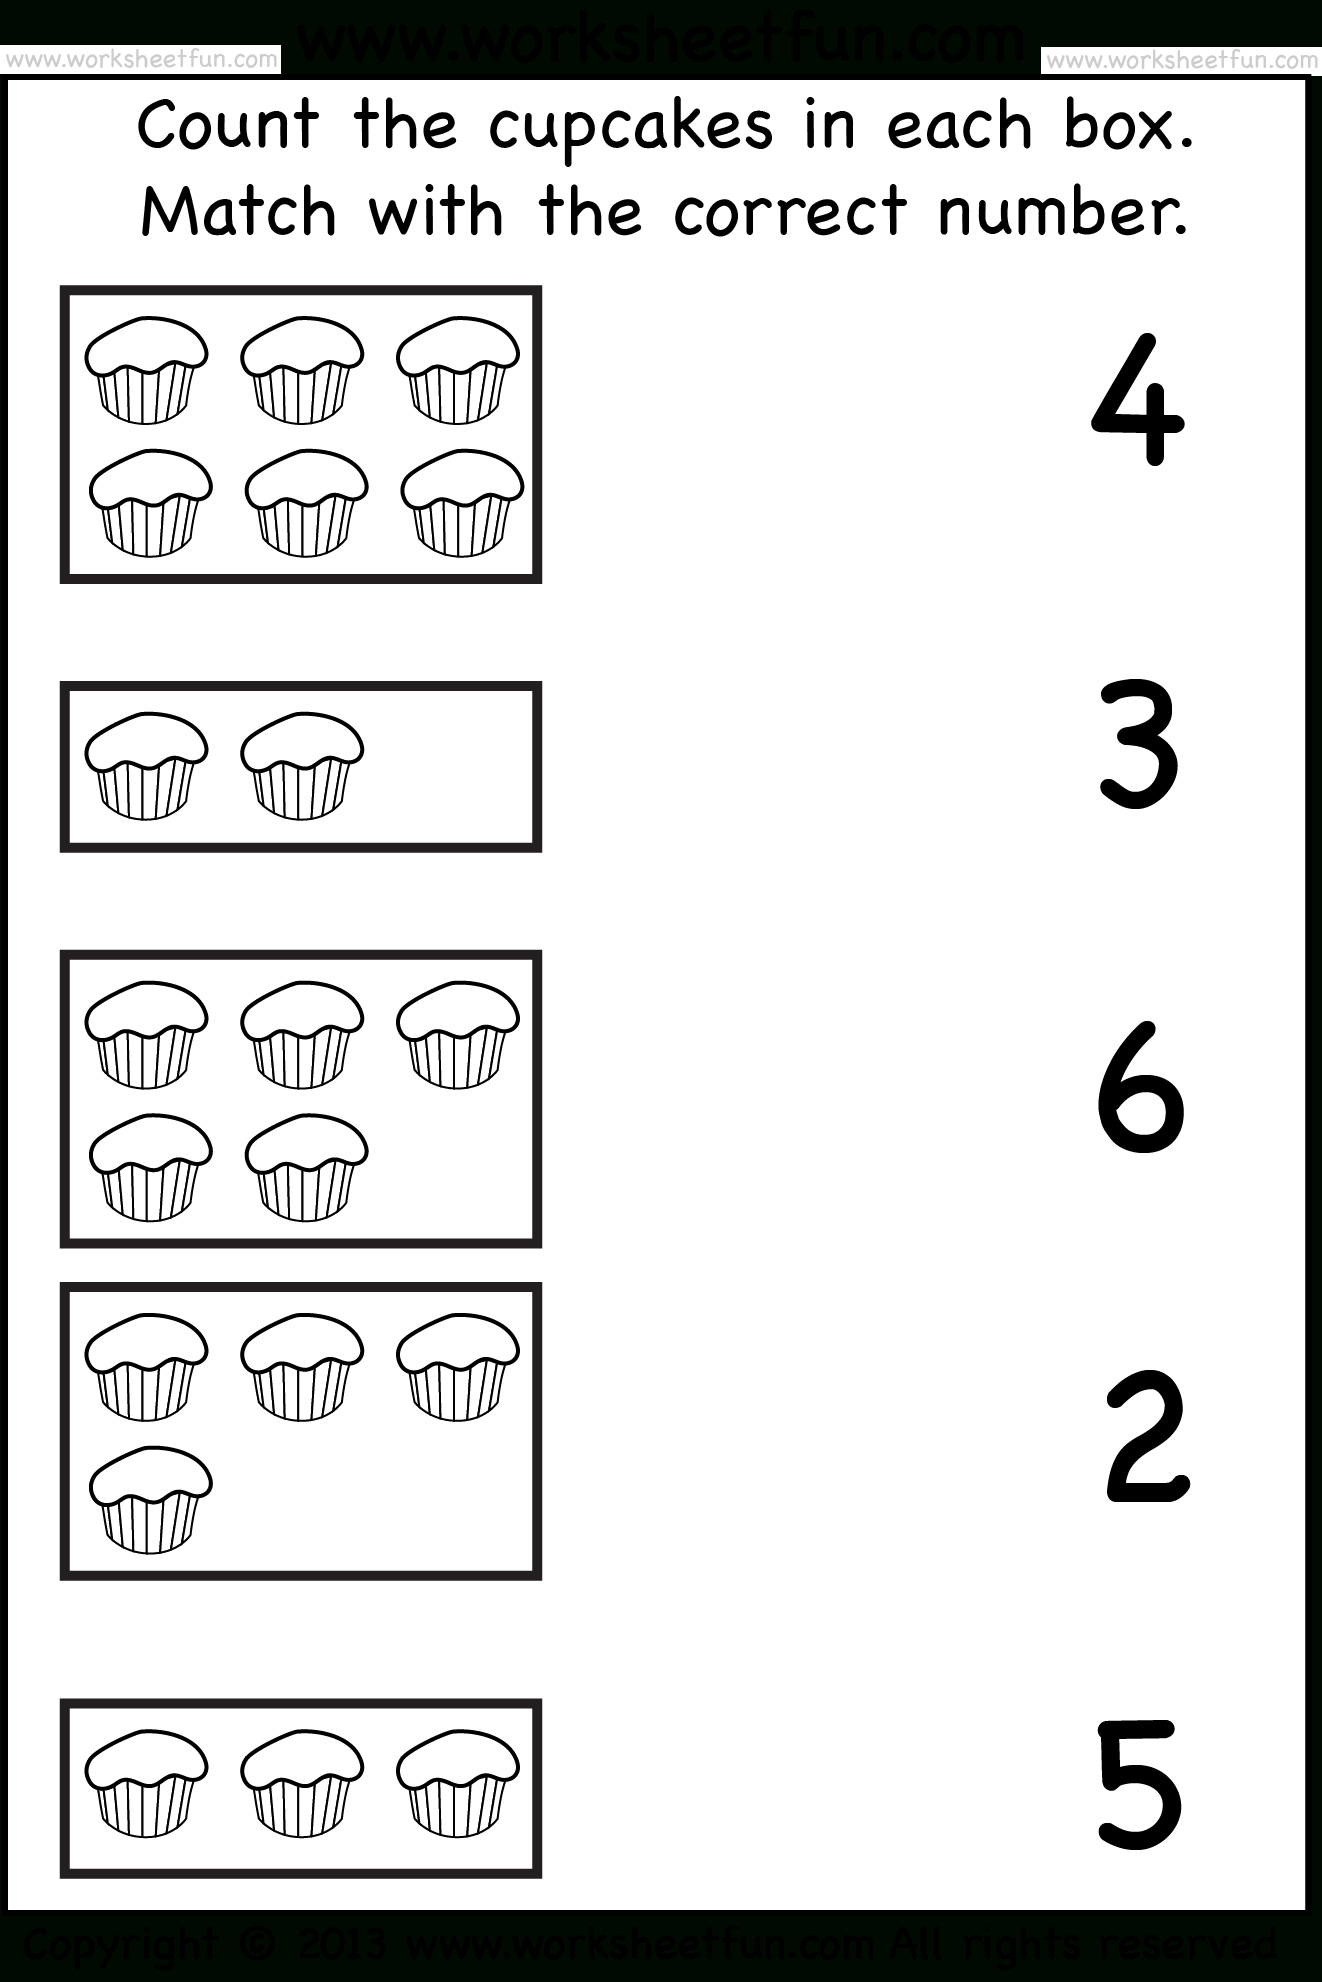 Tellen En Match_Cupcakes_Wfun_1 | -Printables- | Free Kindergarten | Counting Printable Worksheets For Kindergarten